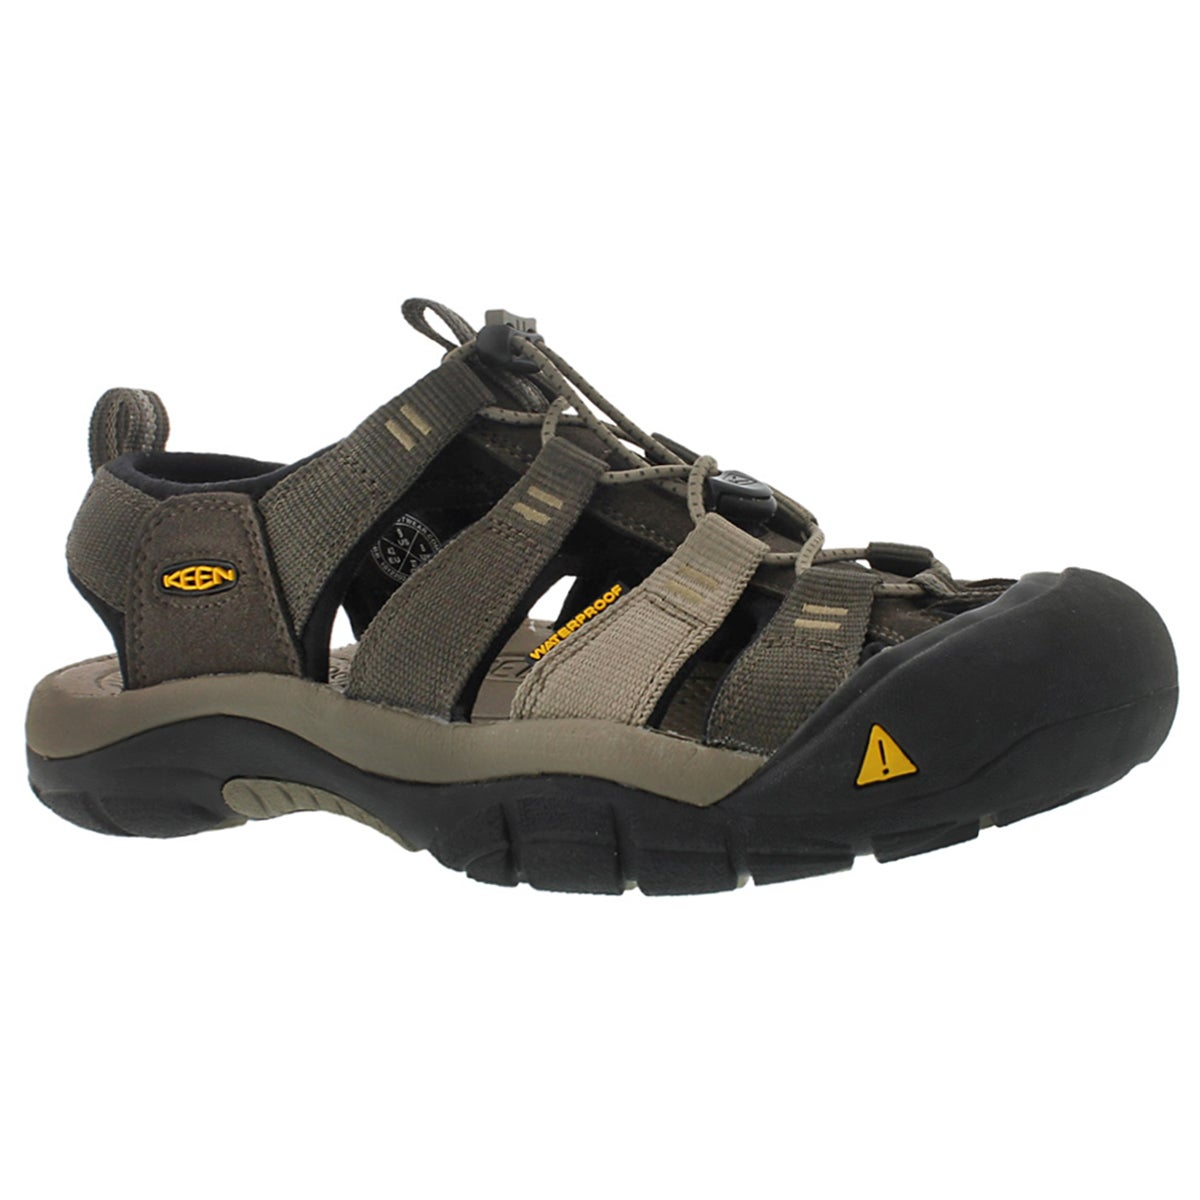 Men's NEWPORT H2 black/olive sport sandals